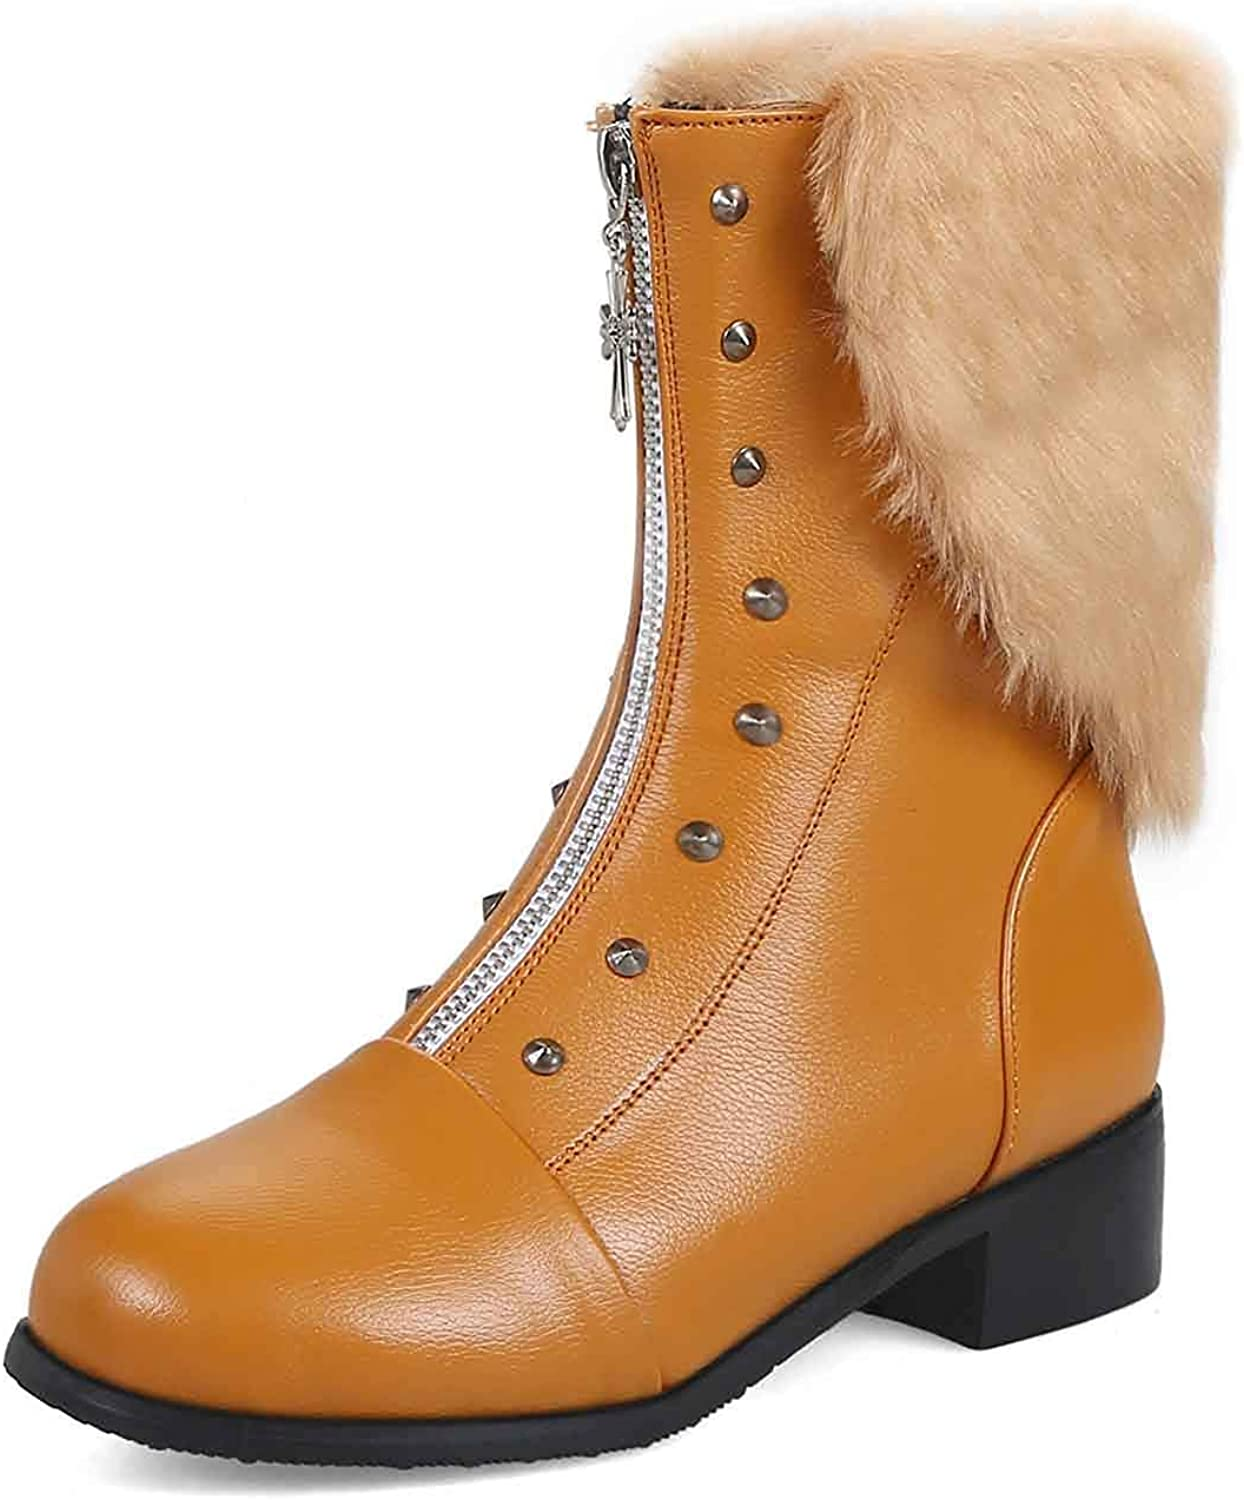 Unm Women's Studded Short Boots with Zipper - Faux Fur Outdoor Round Toe - Chunky Low Heel Ankle Booties